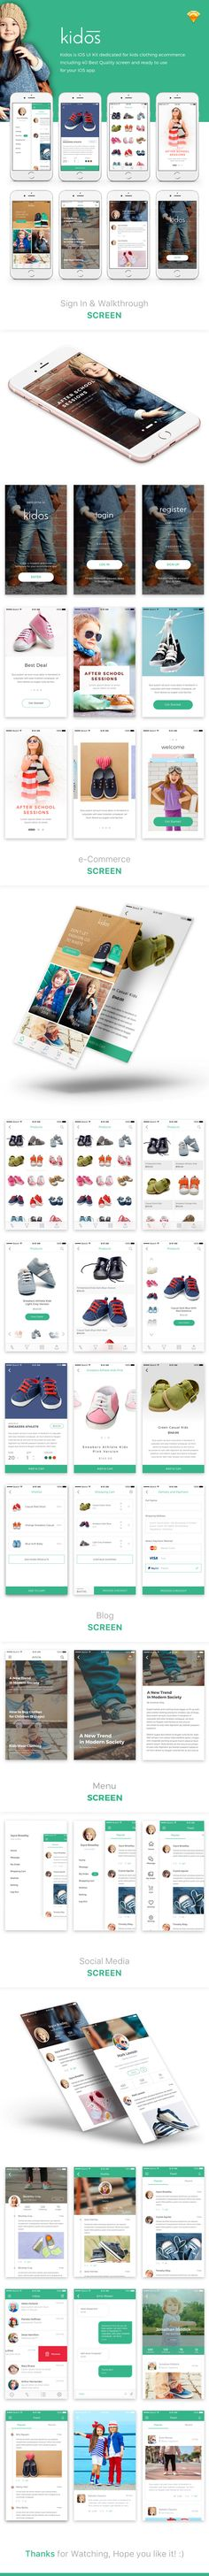 Kidos is iOS UI Kit template for clothing ecommerce. Download here : http://themeforest.net/item/kidos-kids-clothing-ios-ui-kit/15930863?ref=peterdraw